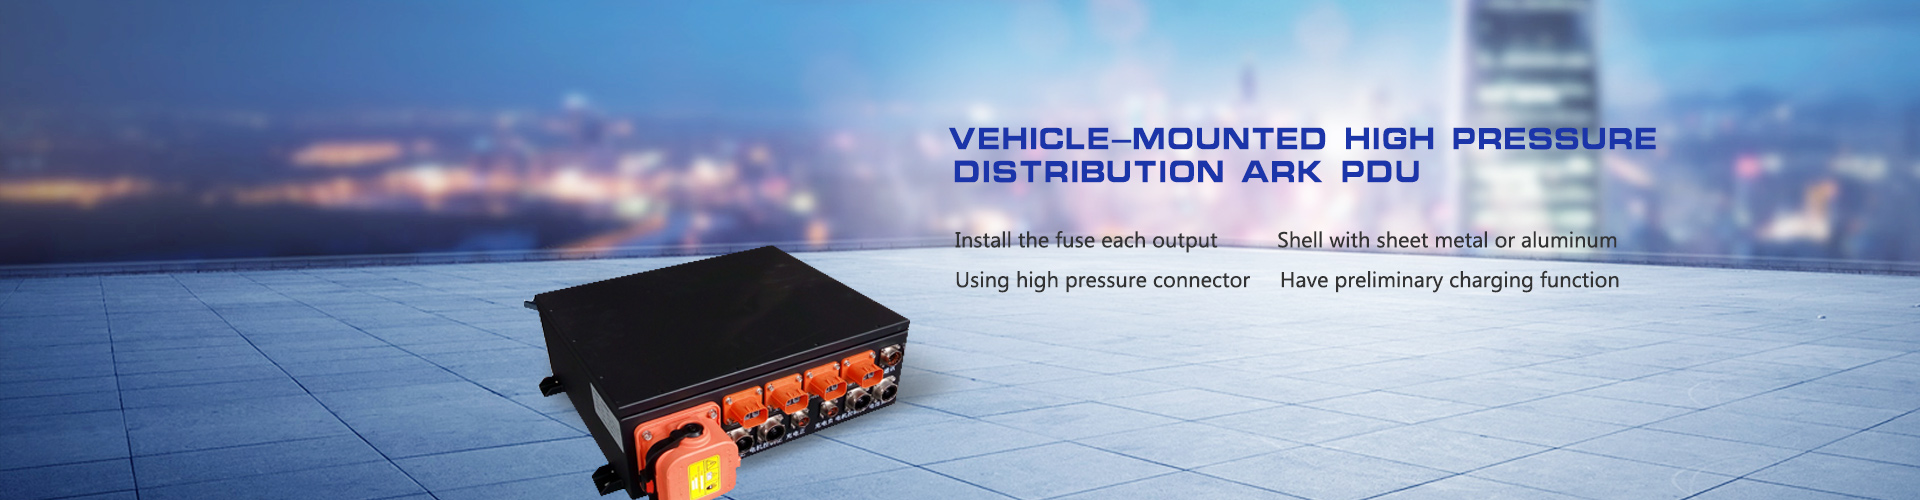 Vehicle-mounted high pressure distribution ark PDU